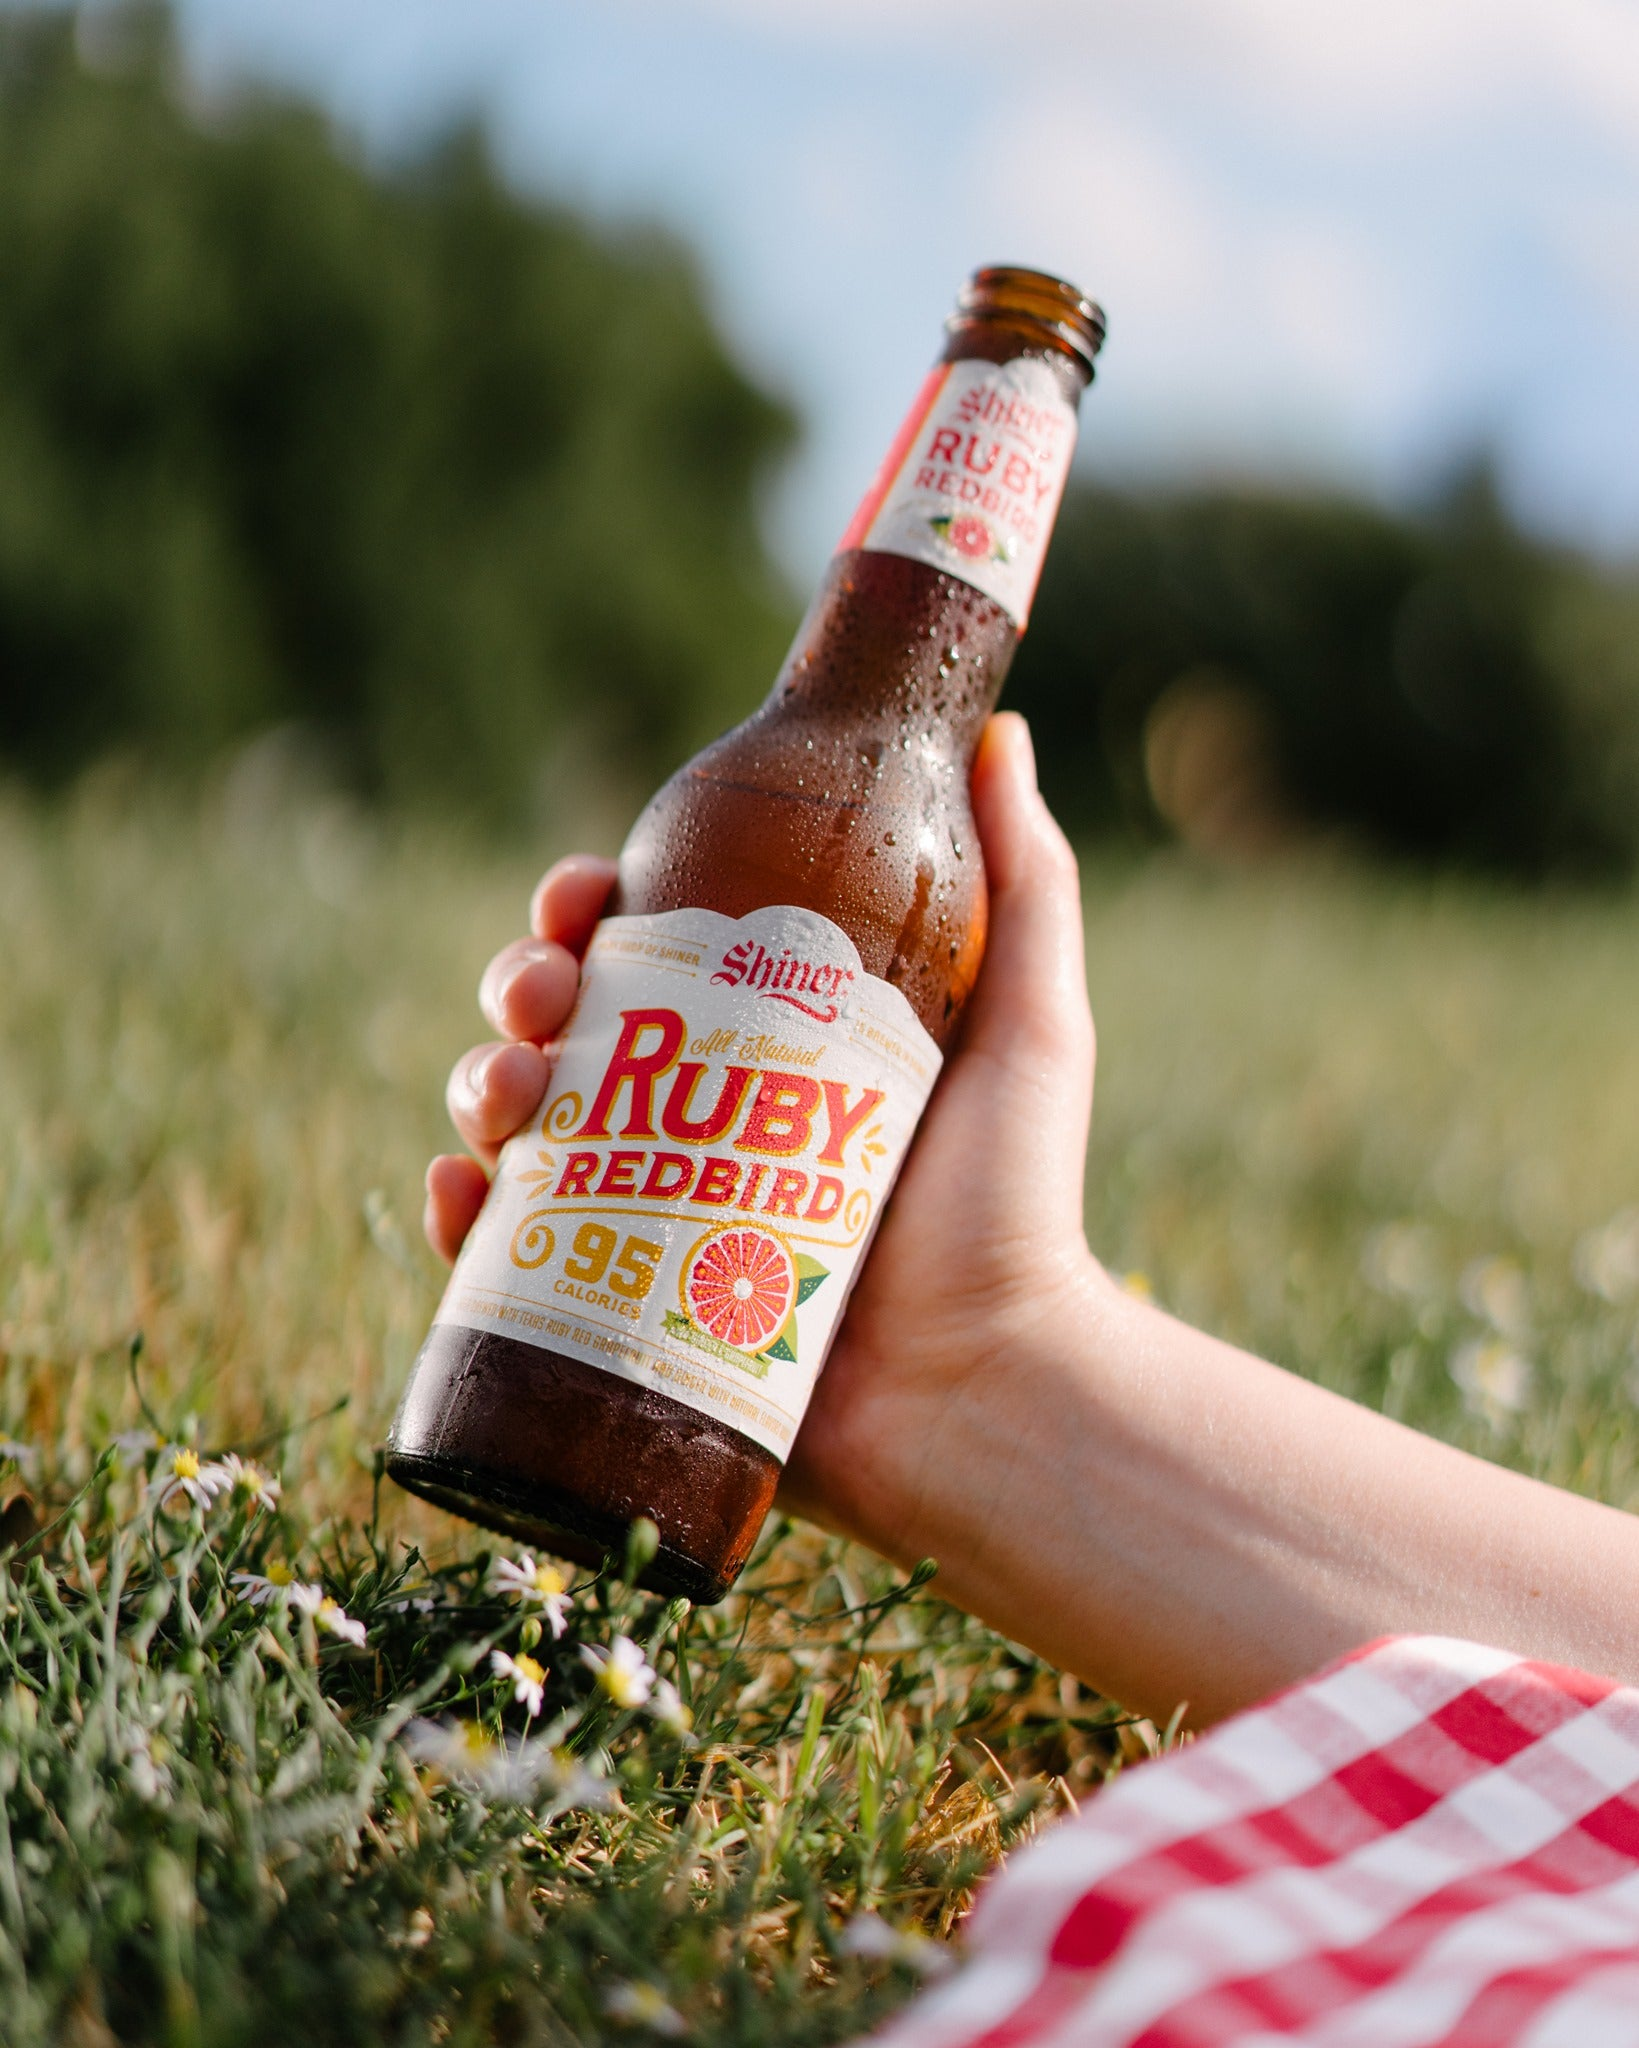 ruby redbird shiner - low carb beer - keto beer - best low carb beer - best keto beer